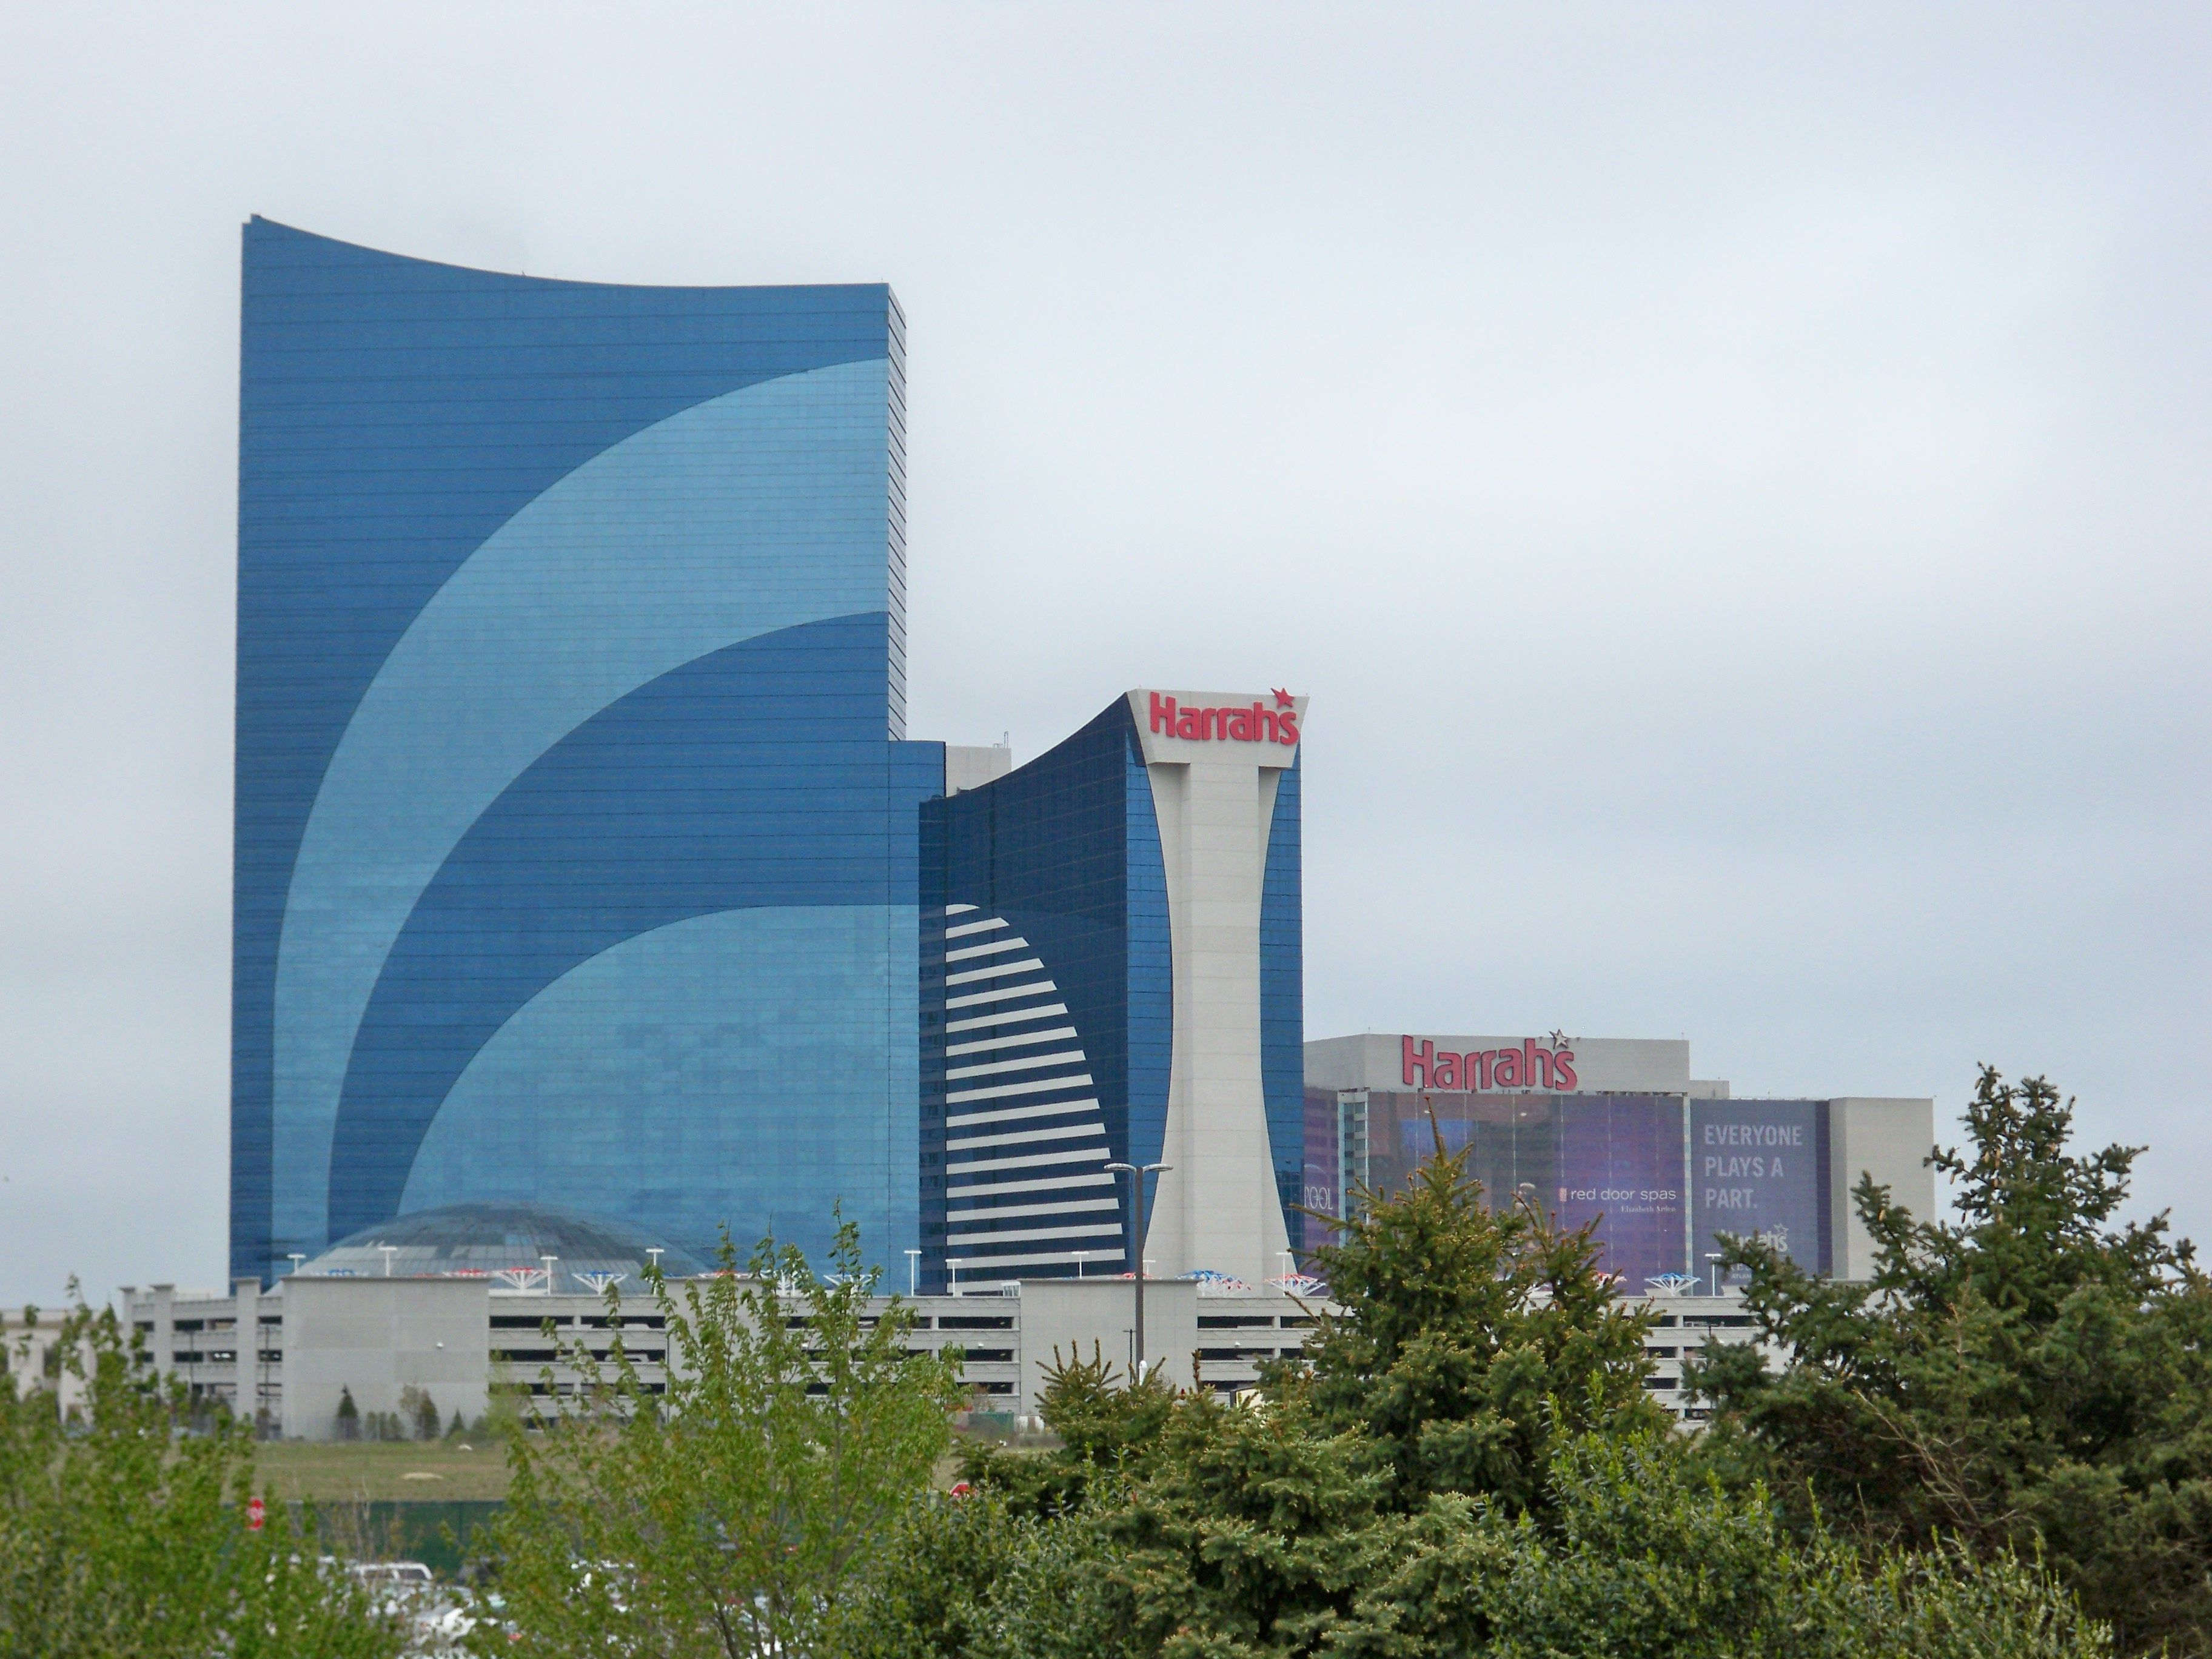 Harrahs Casino In Atlantic City Nj 3 Fave Been There Done